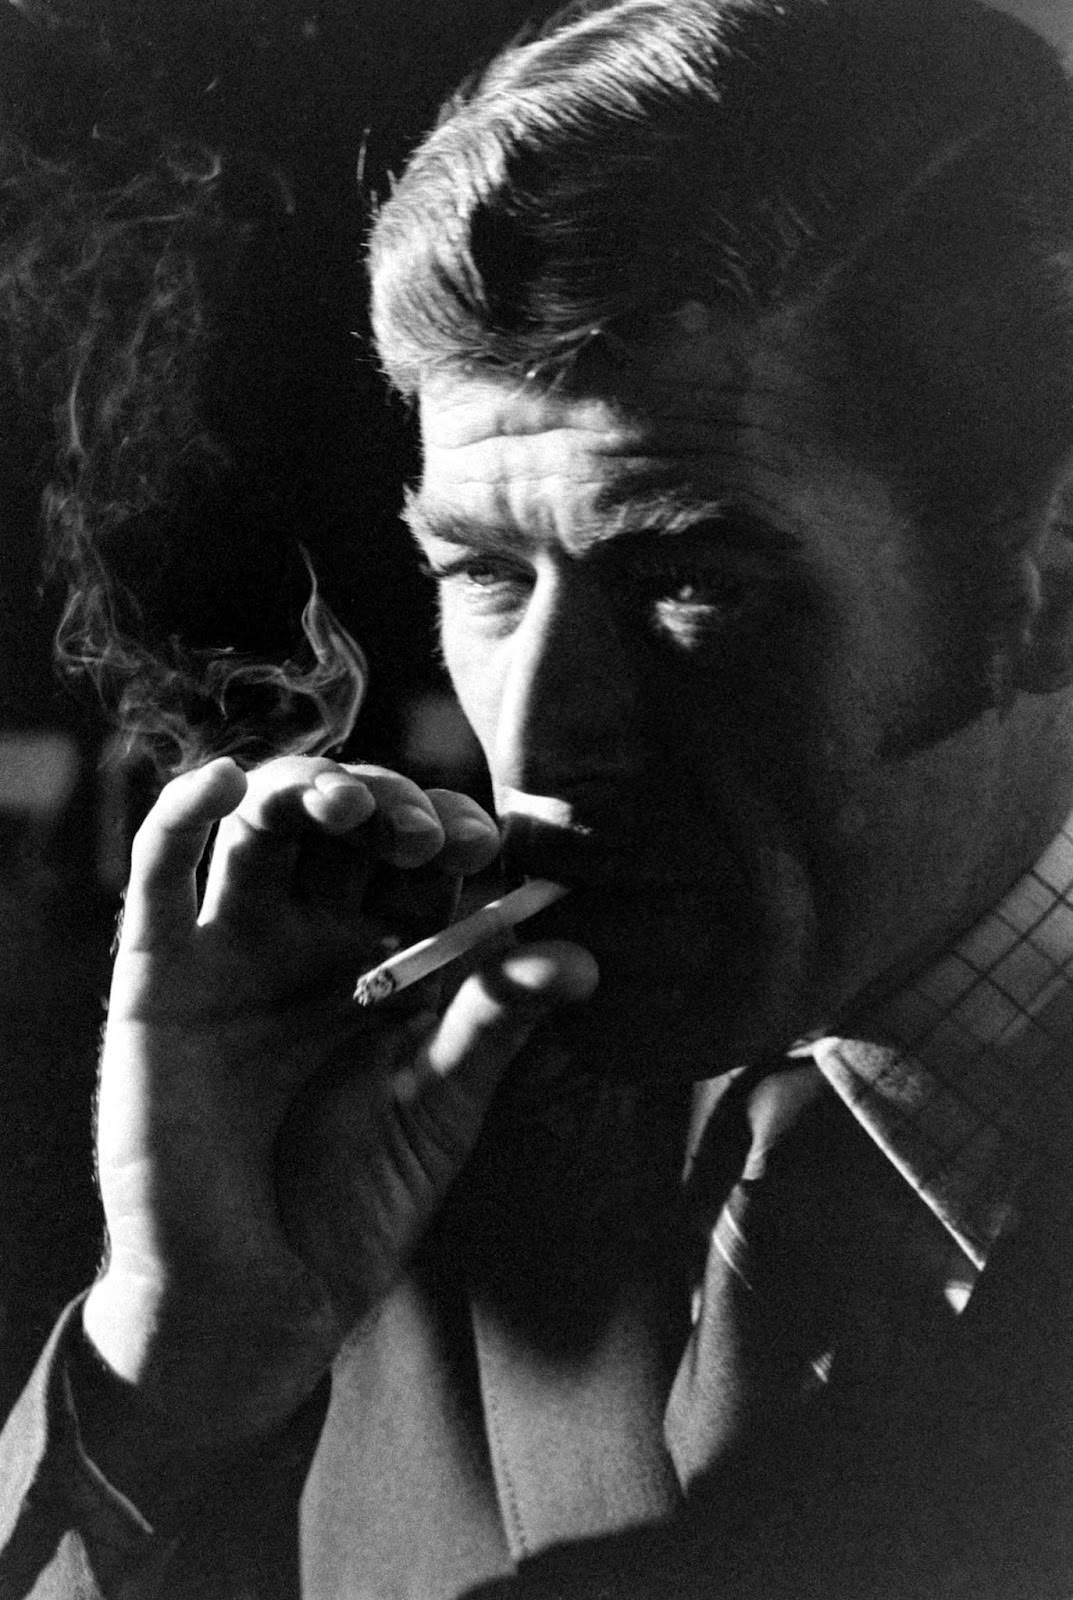 Anthony Rogers smokes a cigarette during his James Bond audition, 1967.